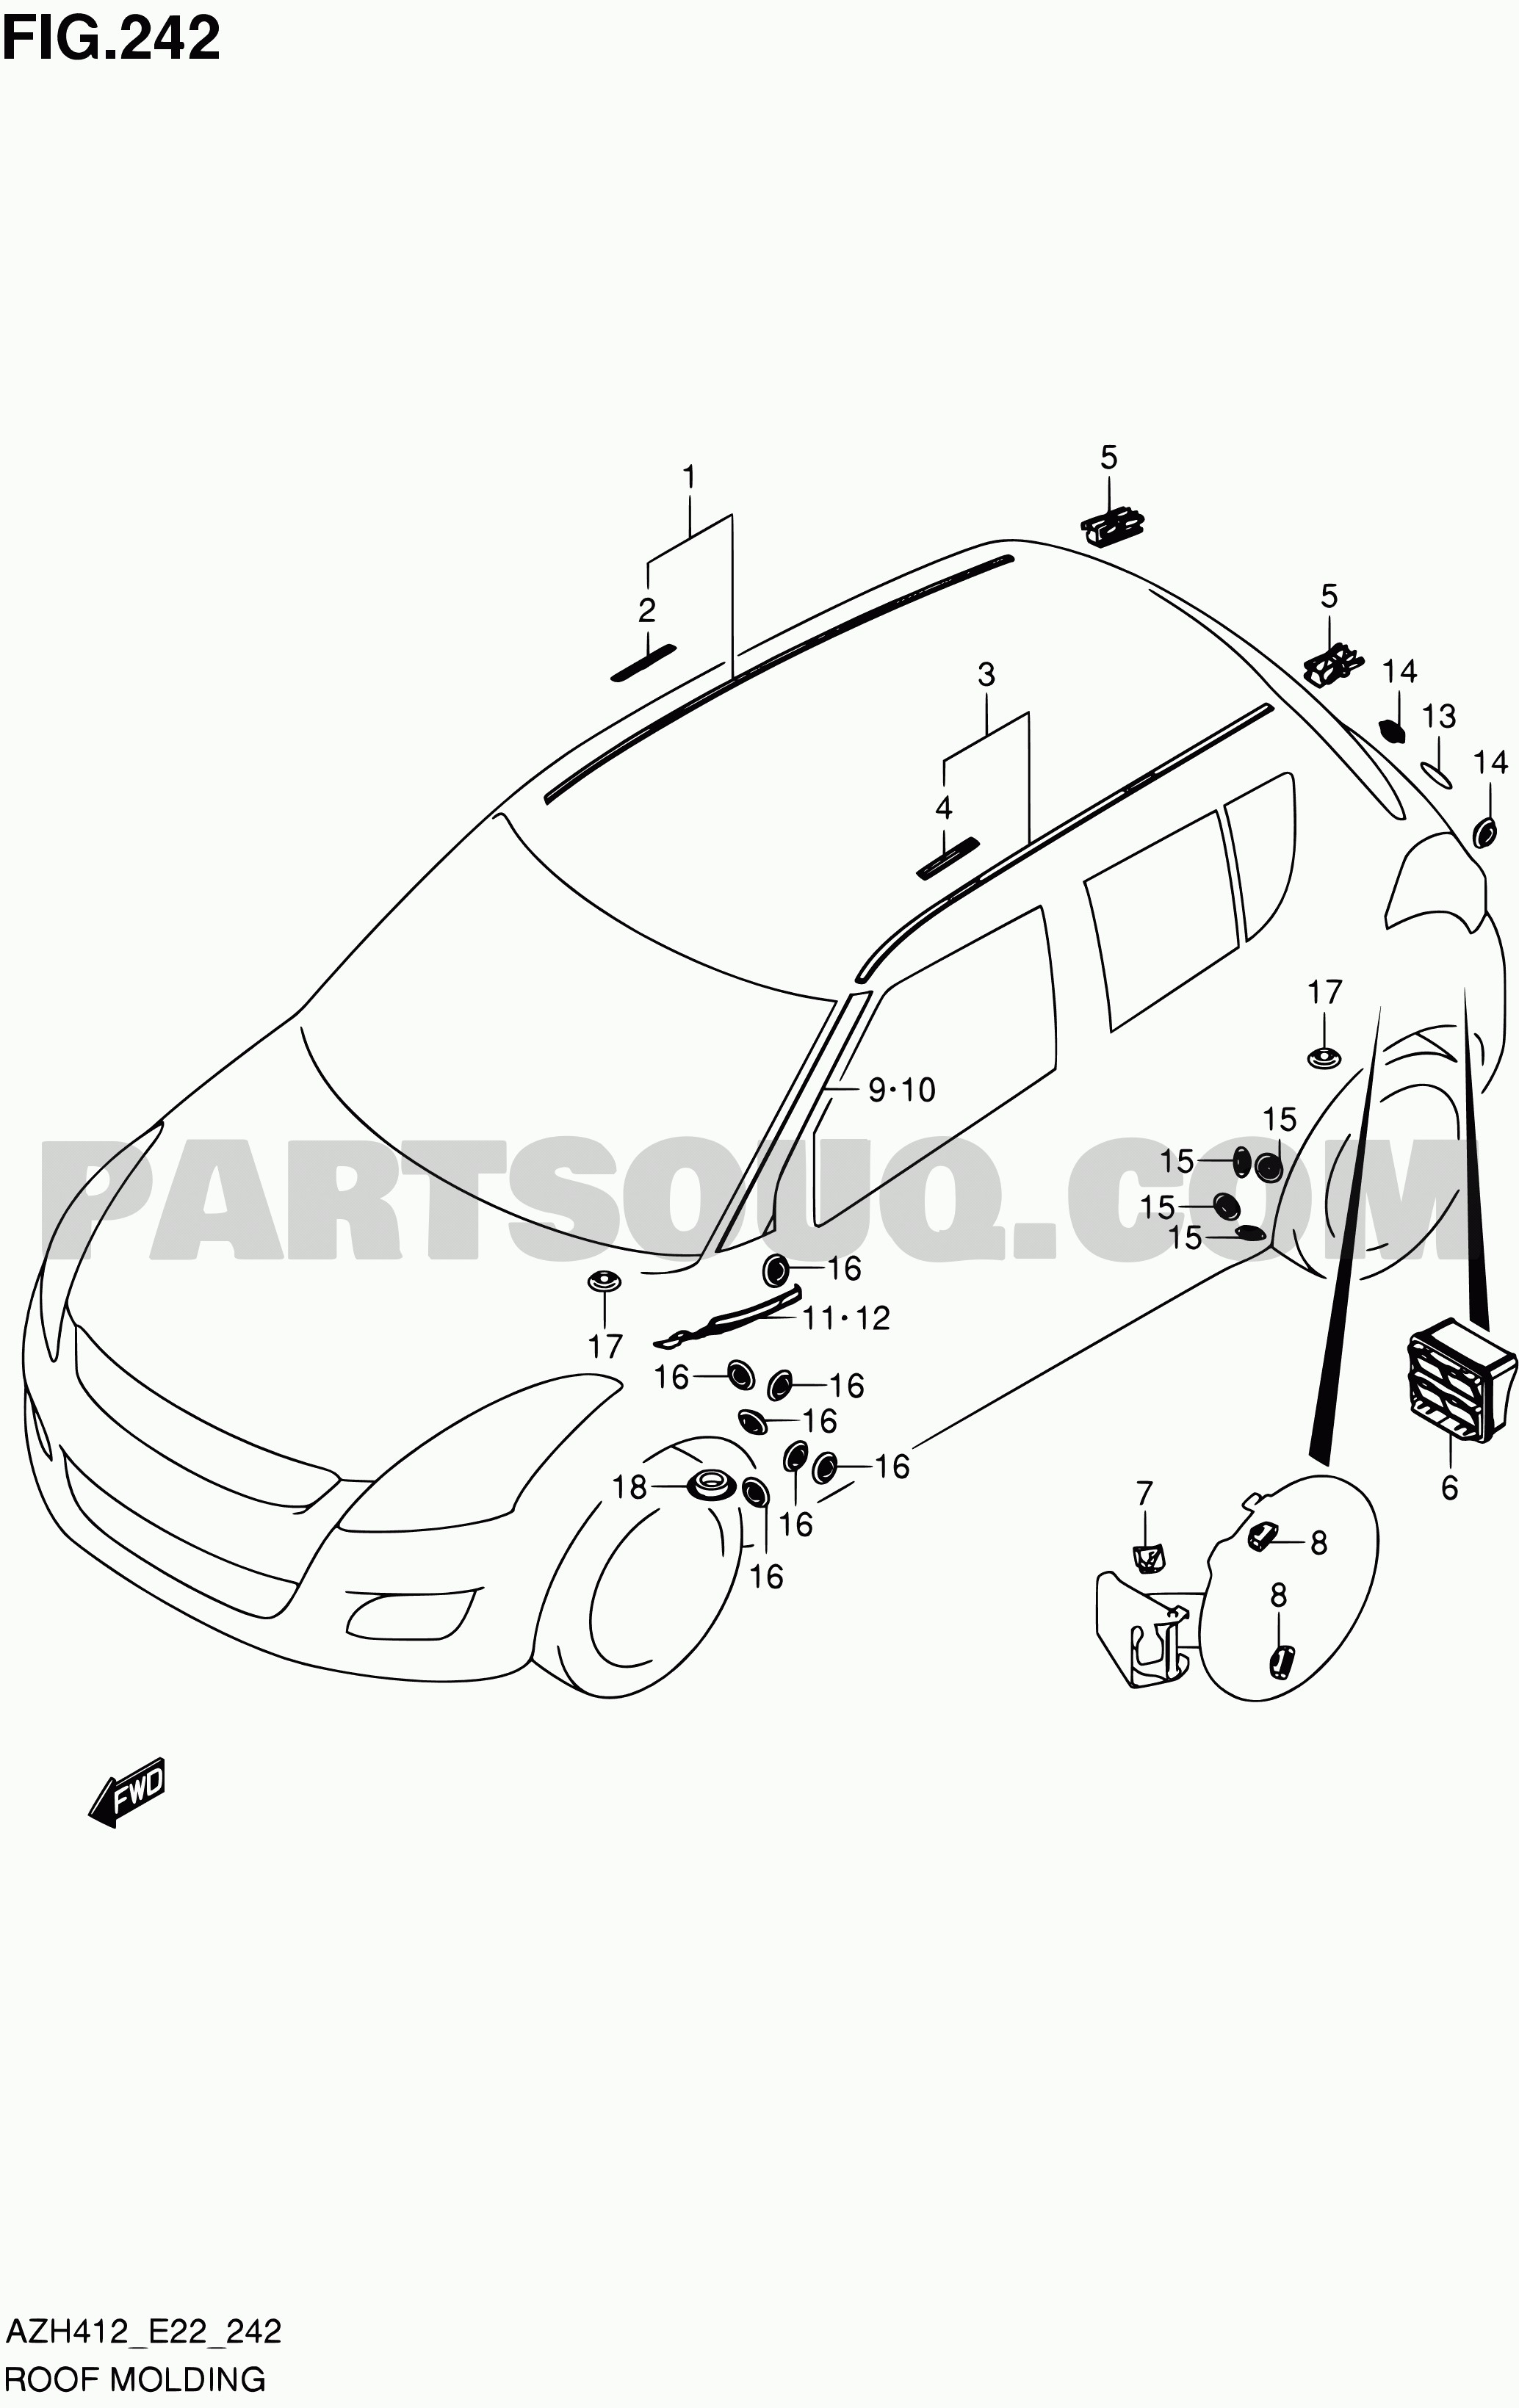 Exterior Car Parts Diagram 242 Roof Molding Swift Azh412 Azh412 E22 Suzuki Of Exterior Car Parts Diagram